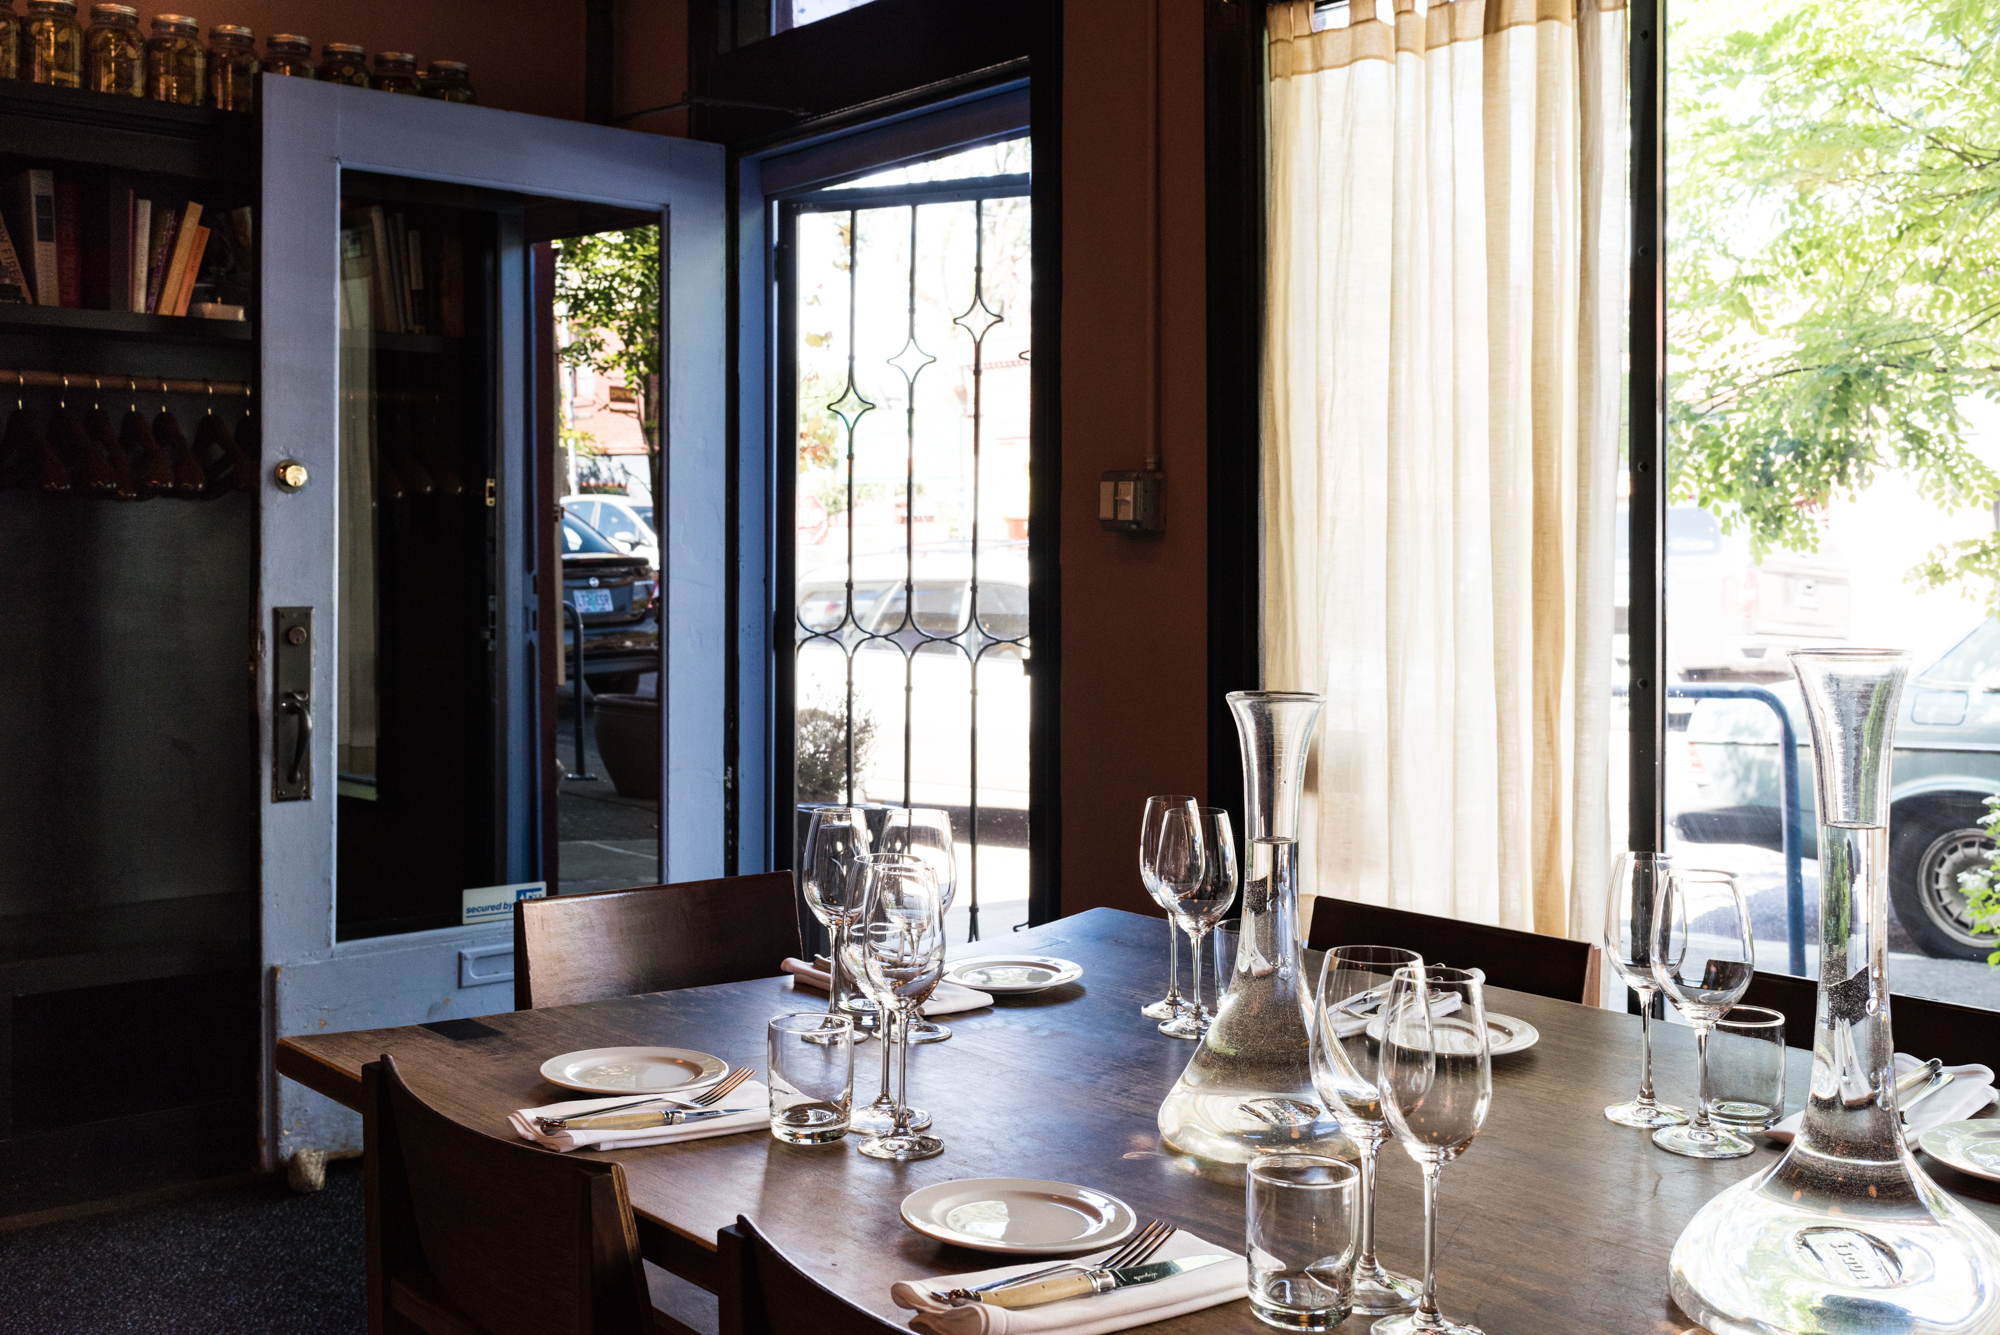 A shot of one of Beast's communal tables, which sits in the window